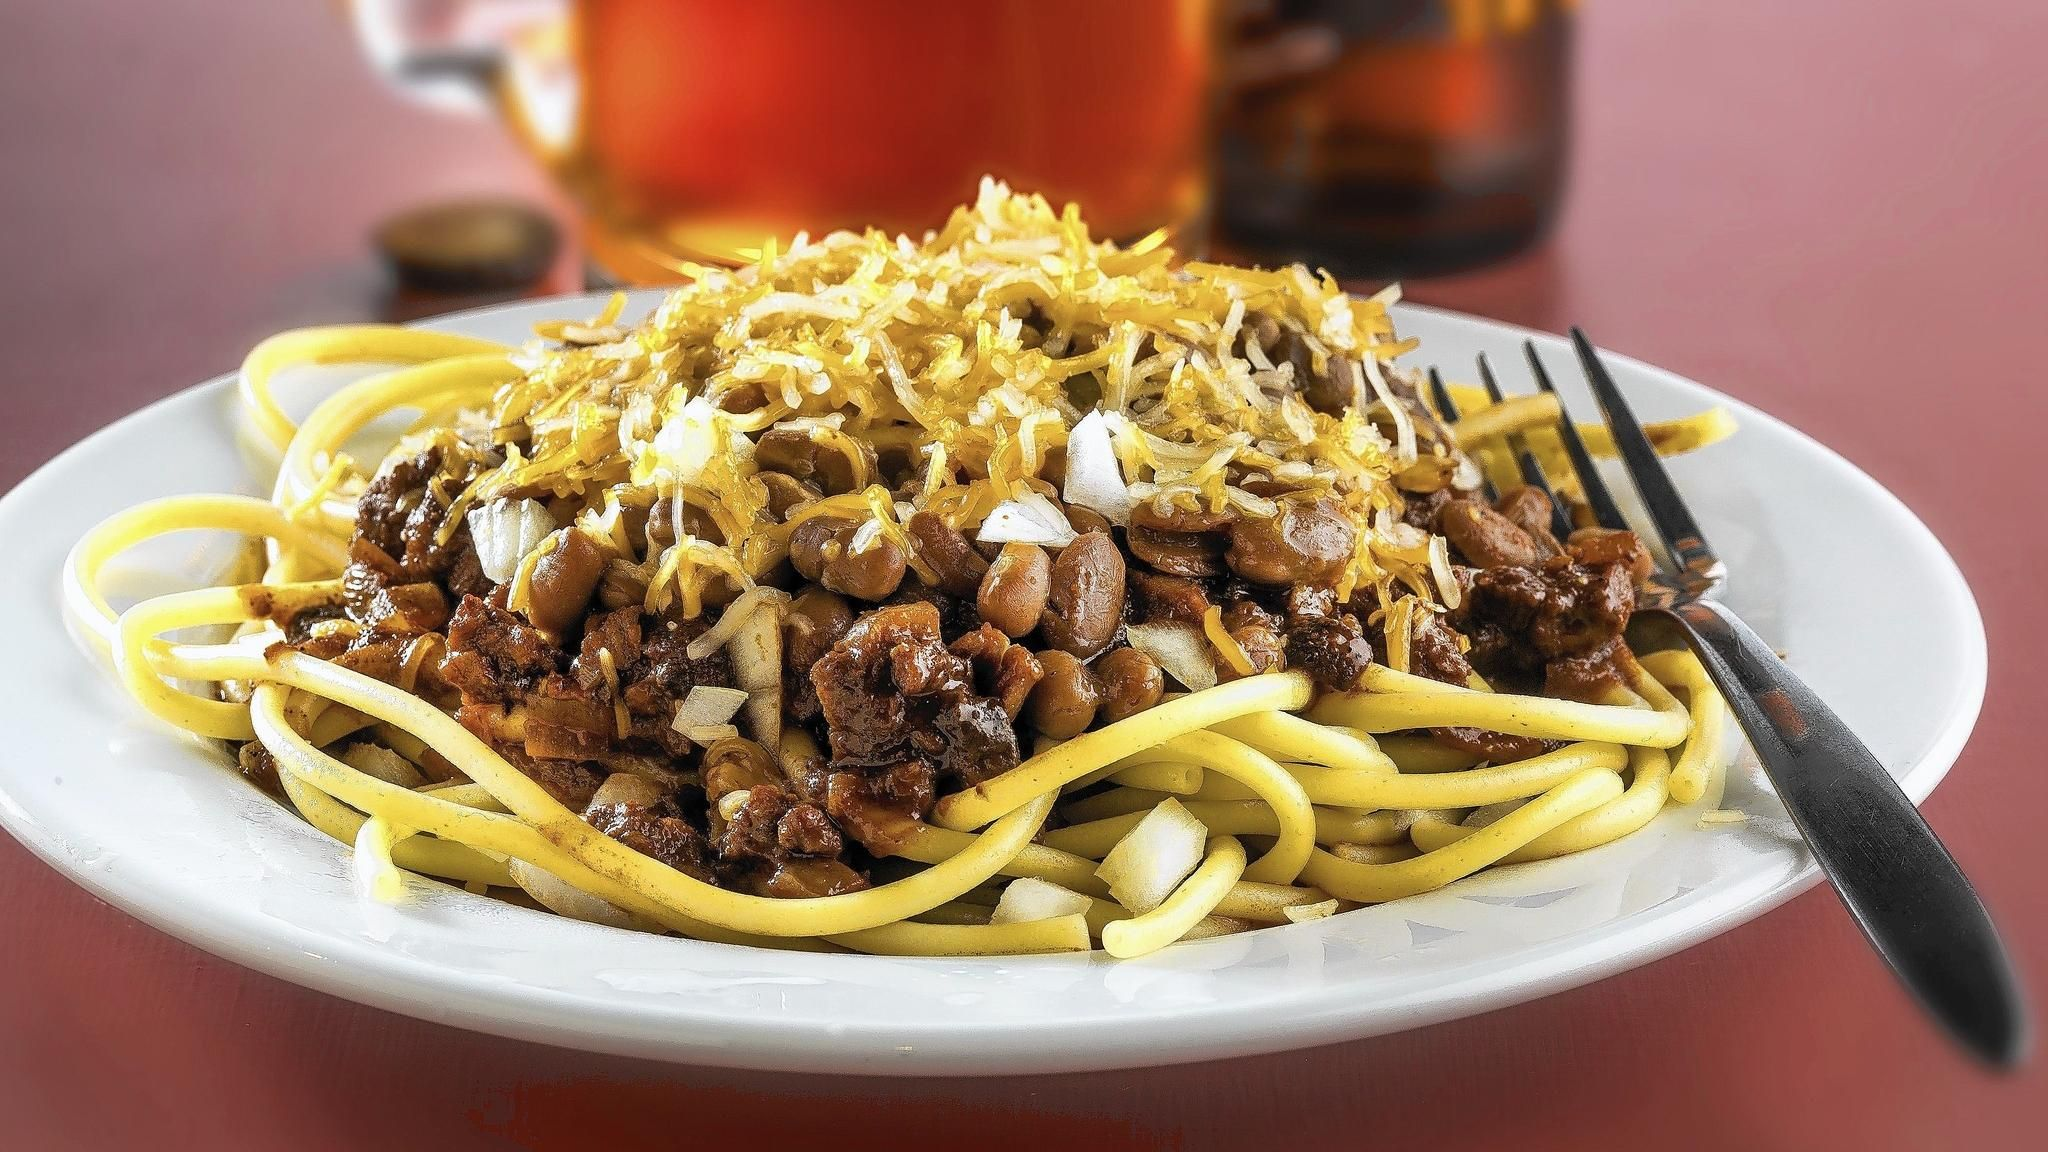 Vegan or not, Cincy chili is all about spices Cincinnati